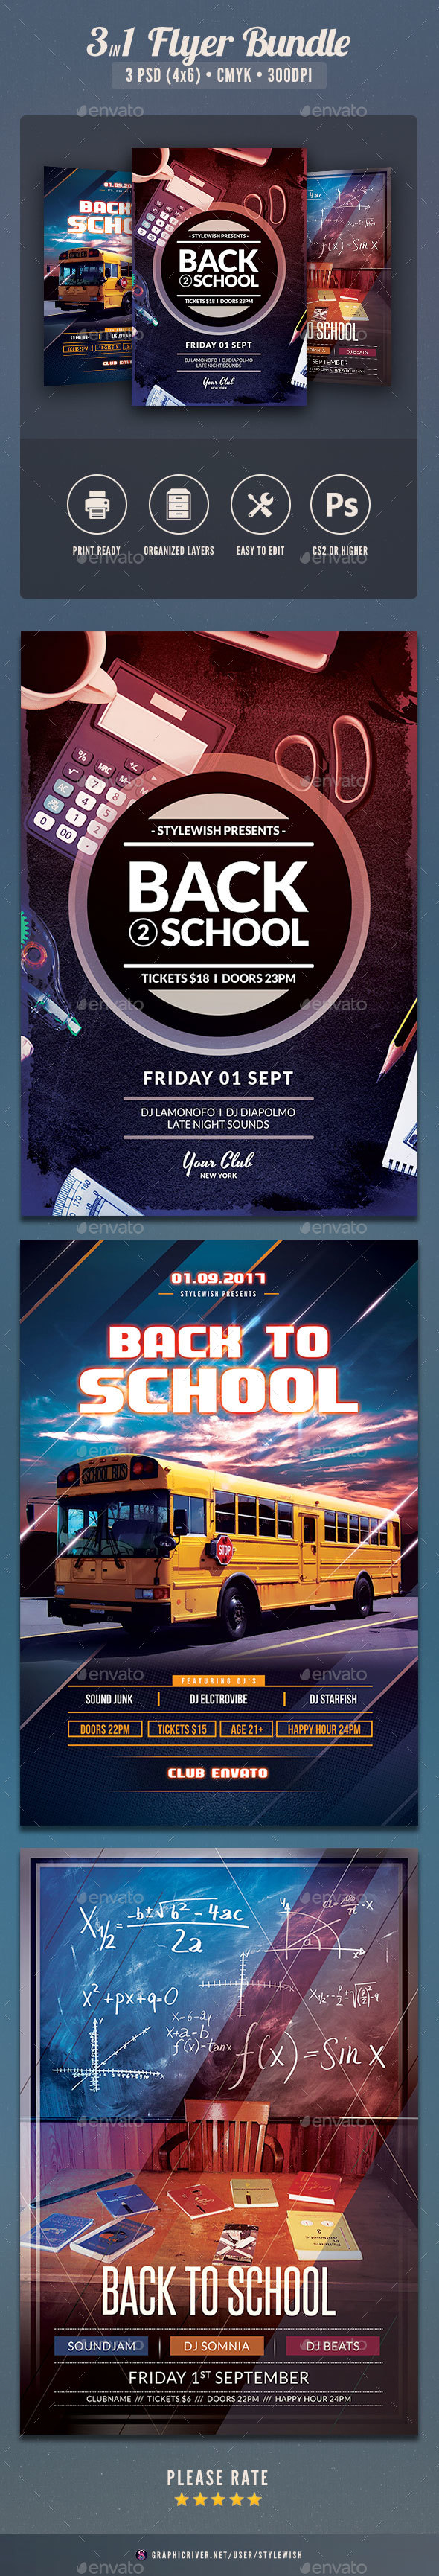 Back to School Flyer Bundle Vol.02 - Clubs & Parties Events